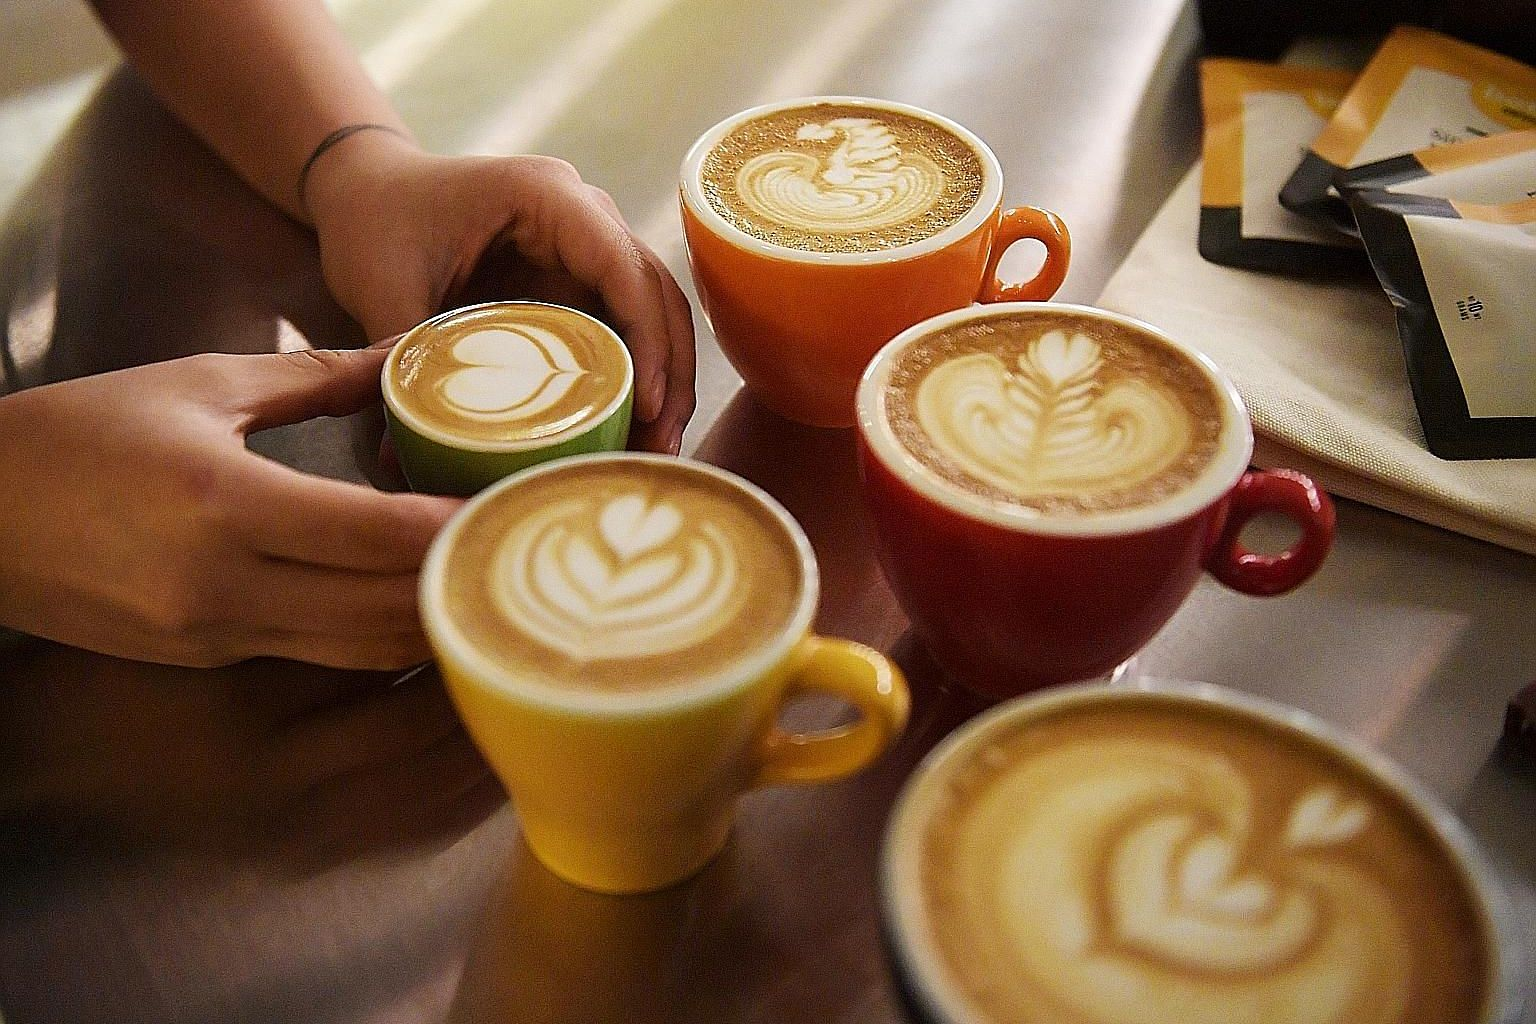 Latte art by Bettr Barista, one of the exhibitors at the Singapore Coffee Festival.